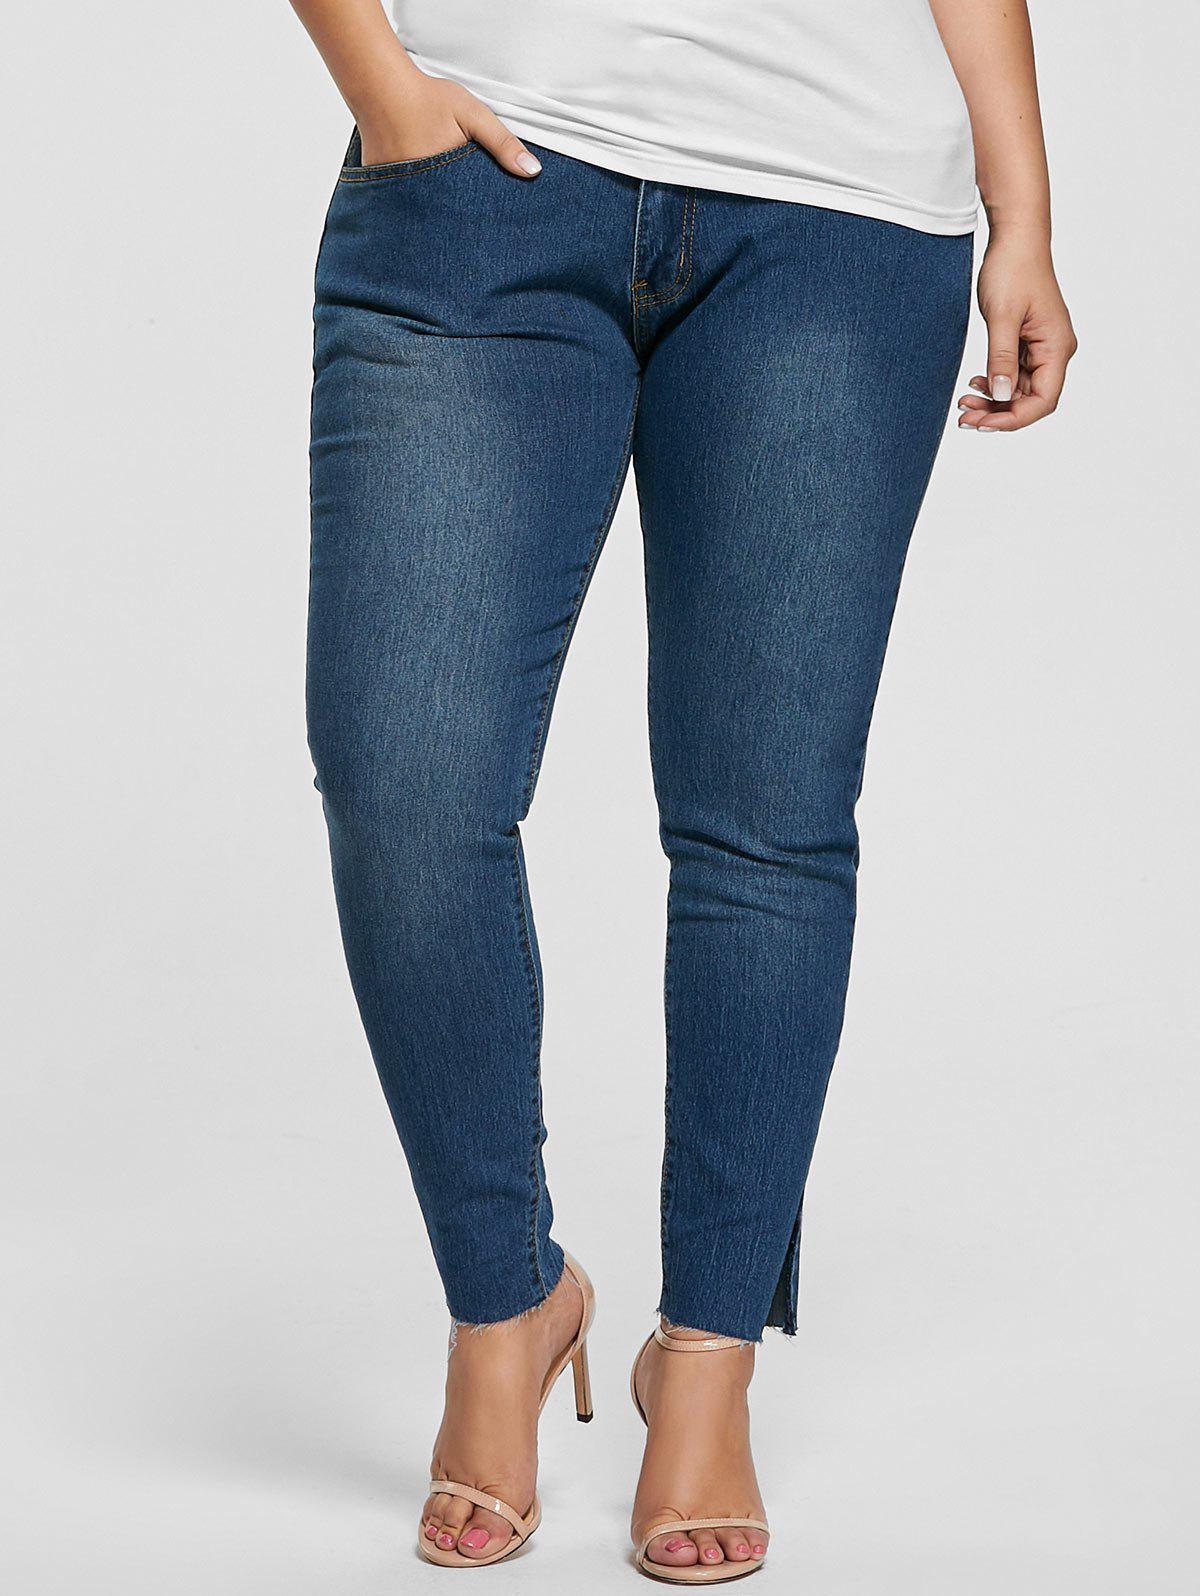 Plus Size Ankle Length Skinny Jeans - DENIM BLUE 2XL